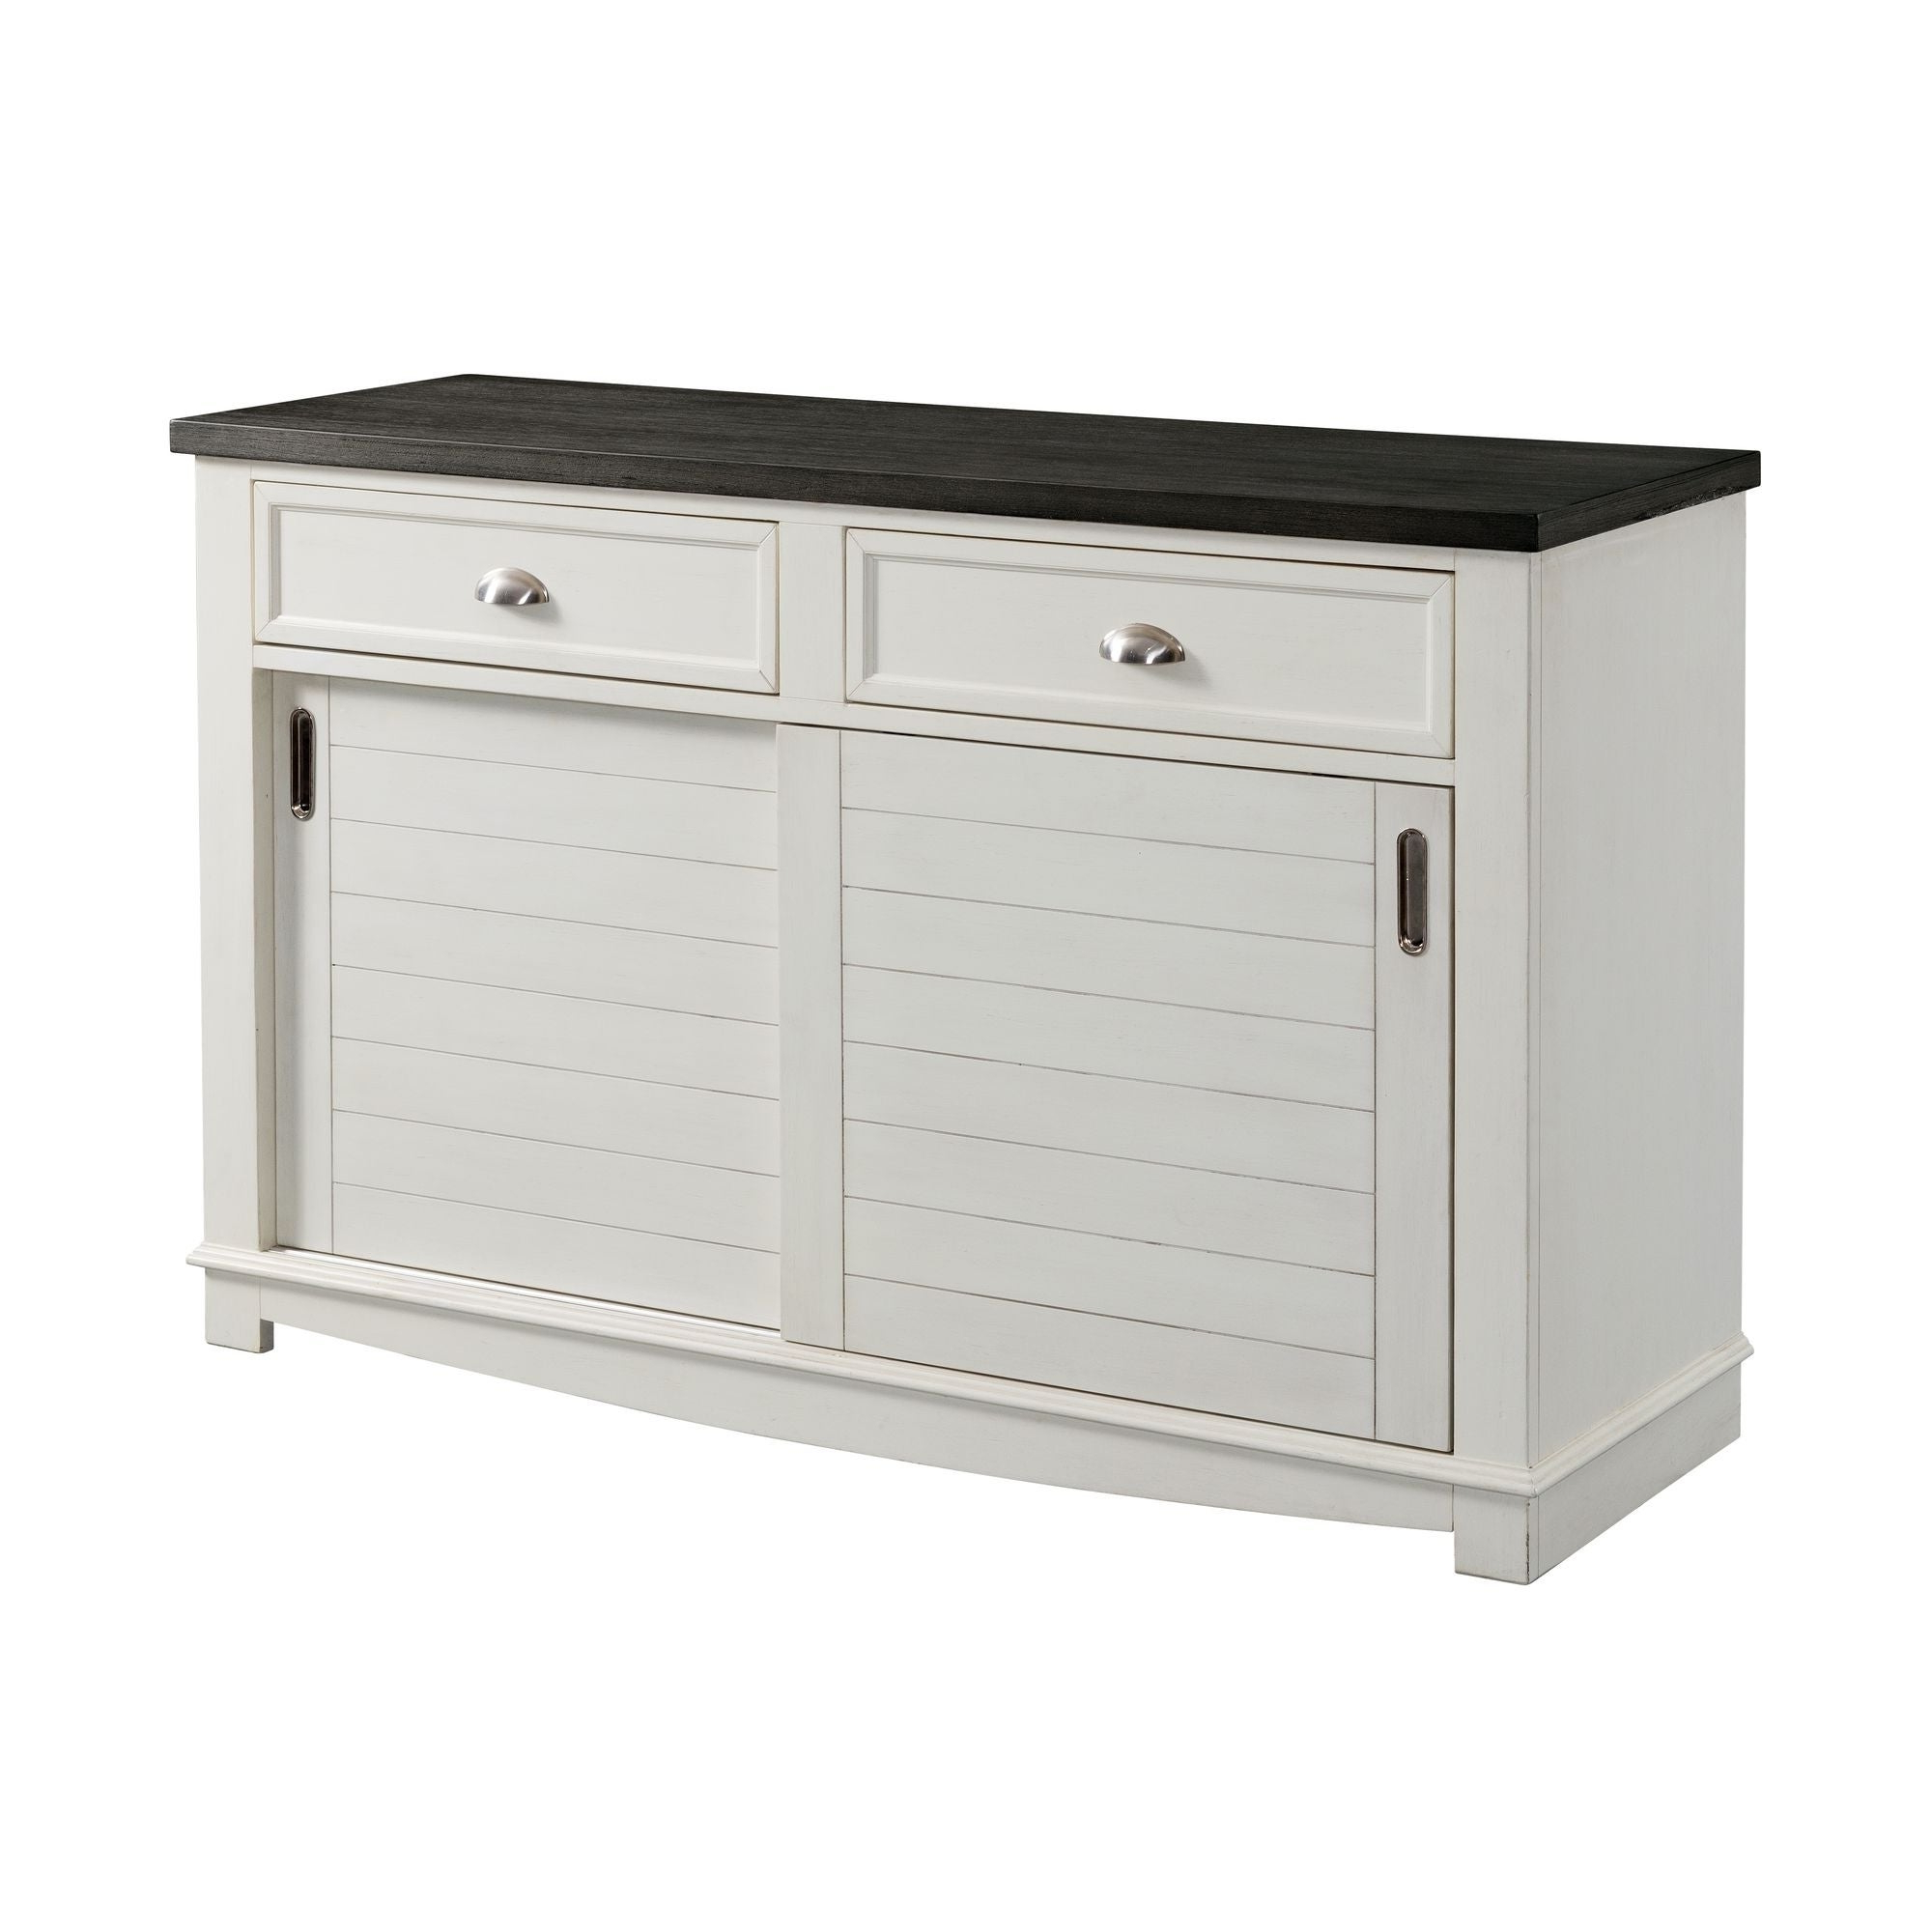 Buy Sliding Doors Buffets, Sideboards & China Cabinets With Regard To Saucedo Rustic White Buffets (View 12 of 20)